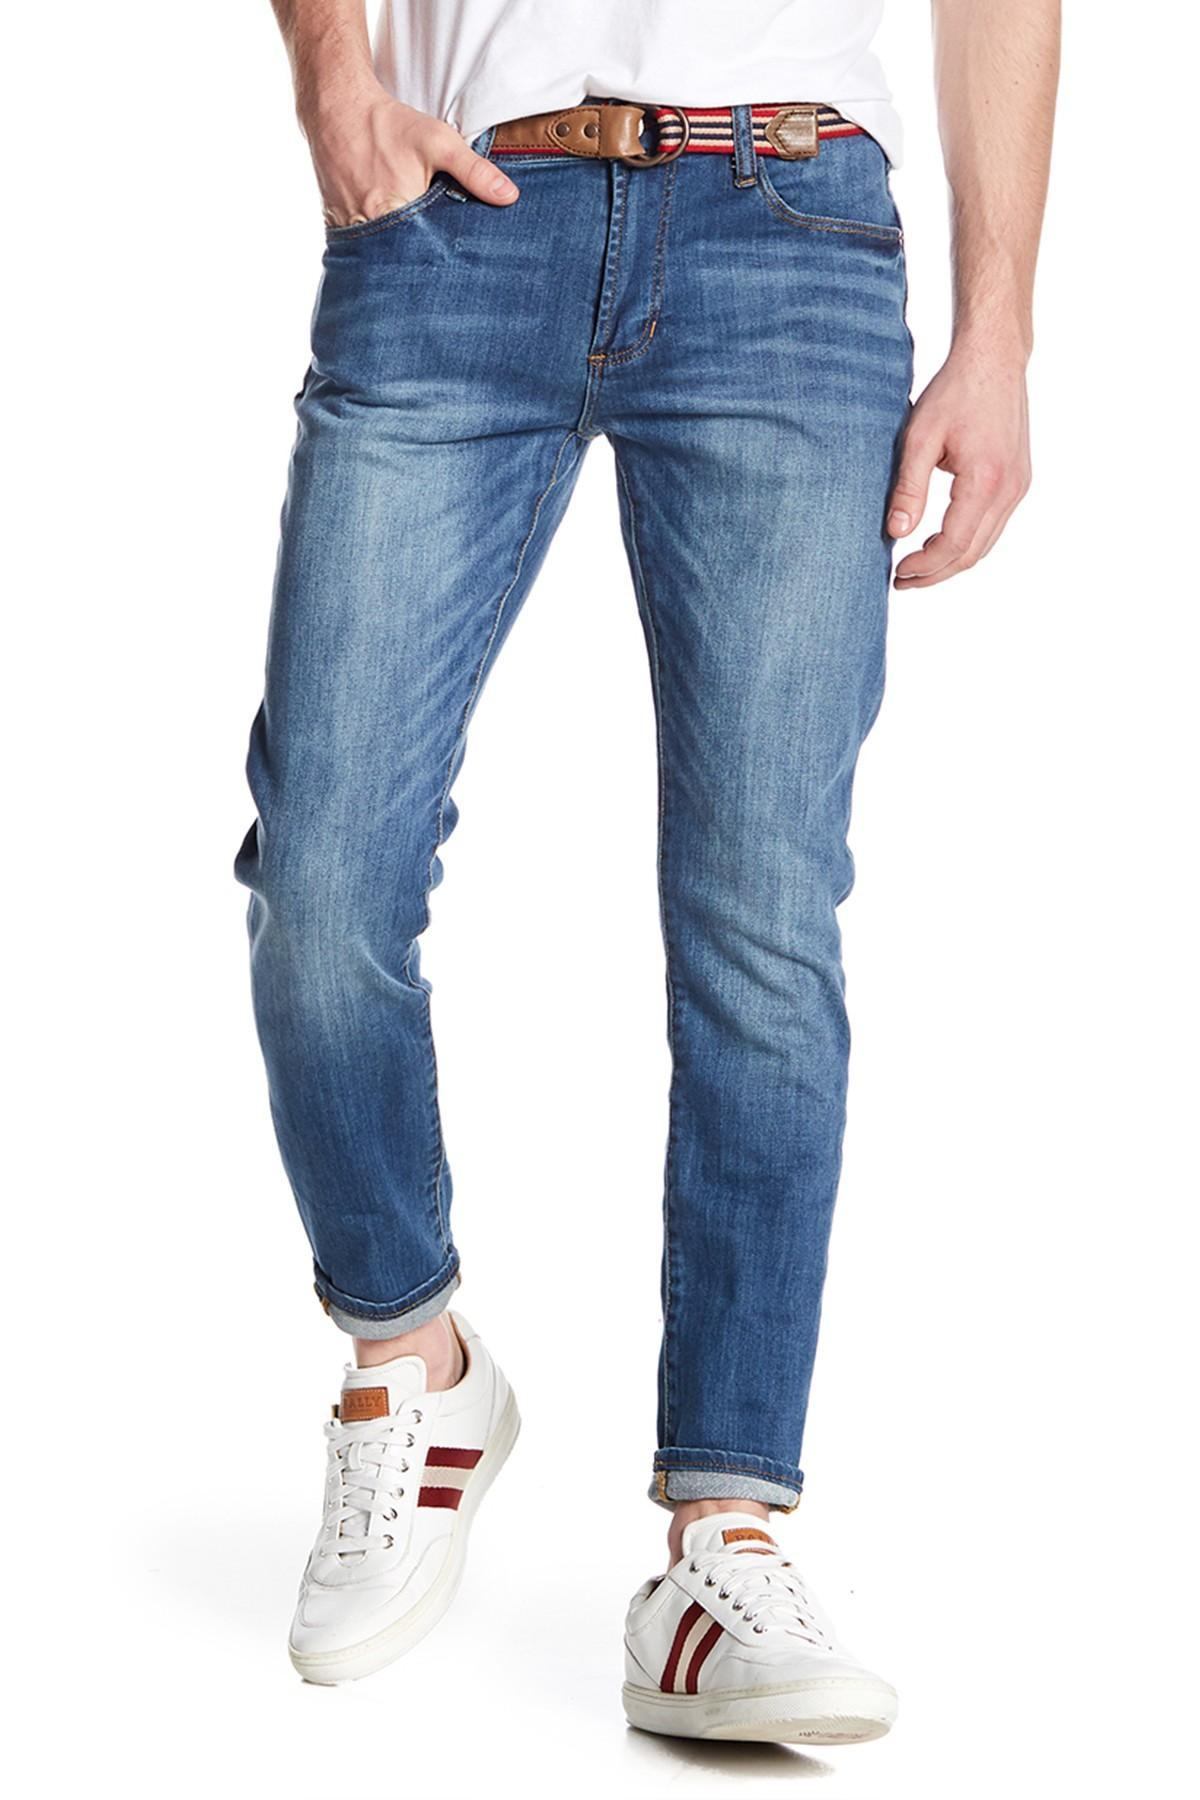 7ad4c4b983 Lyst - Articles of Society Dylan Washed Denim Slim Jeans in Blue for Men